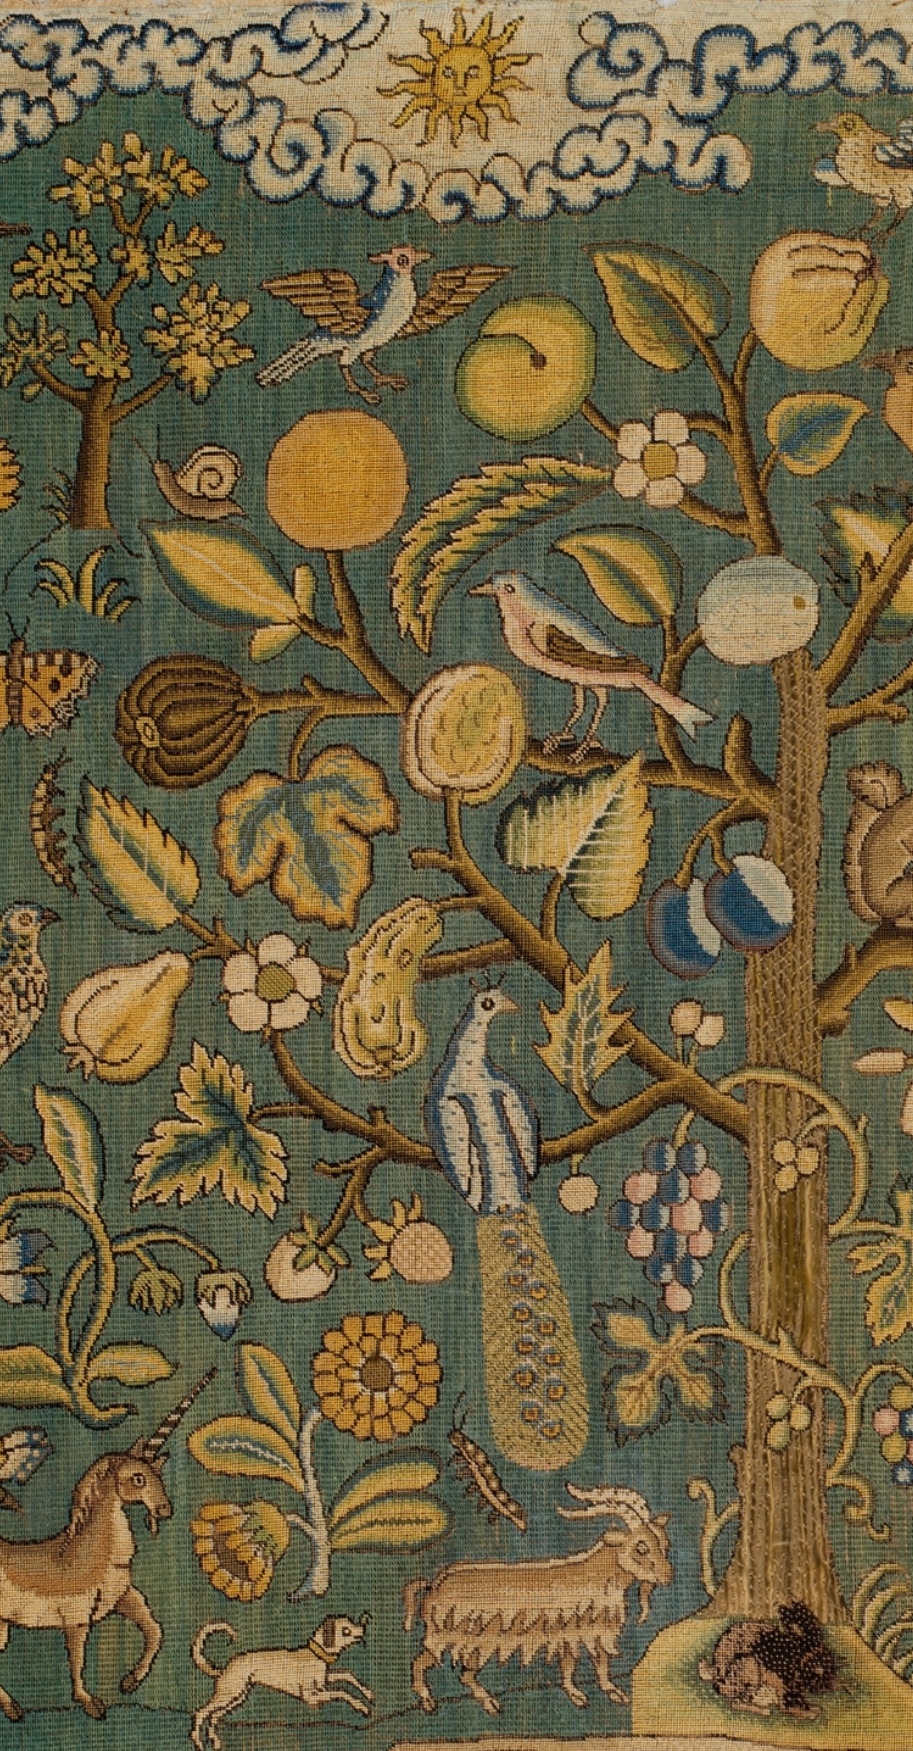 1screenshot_2019-01-04 the tree of life british the met